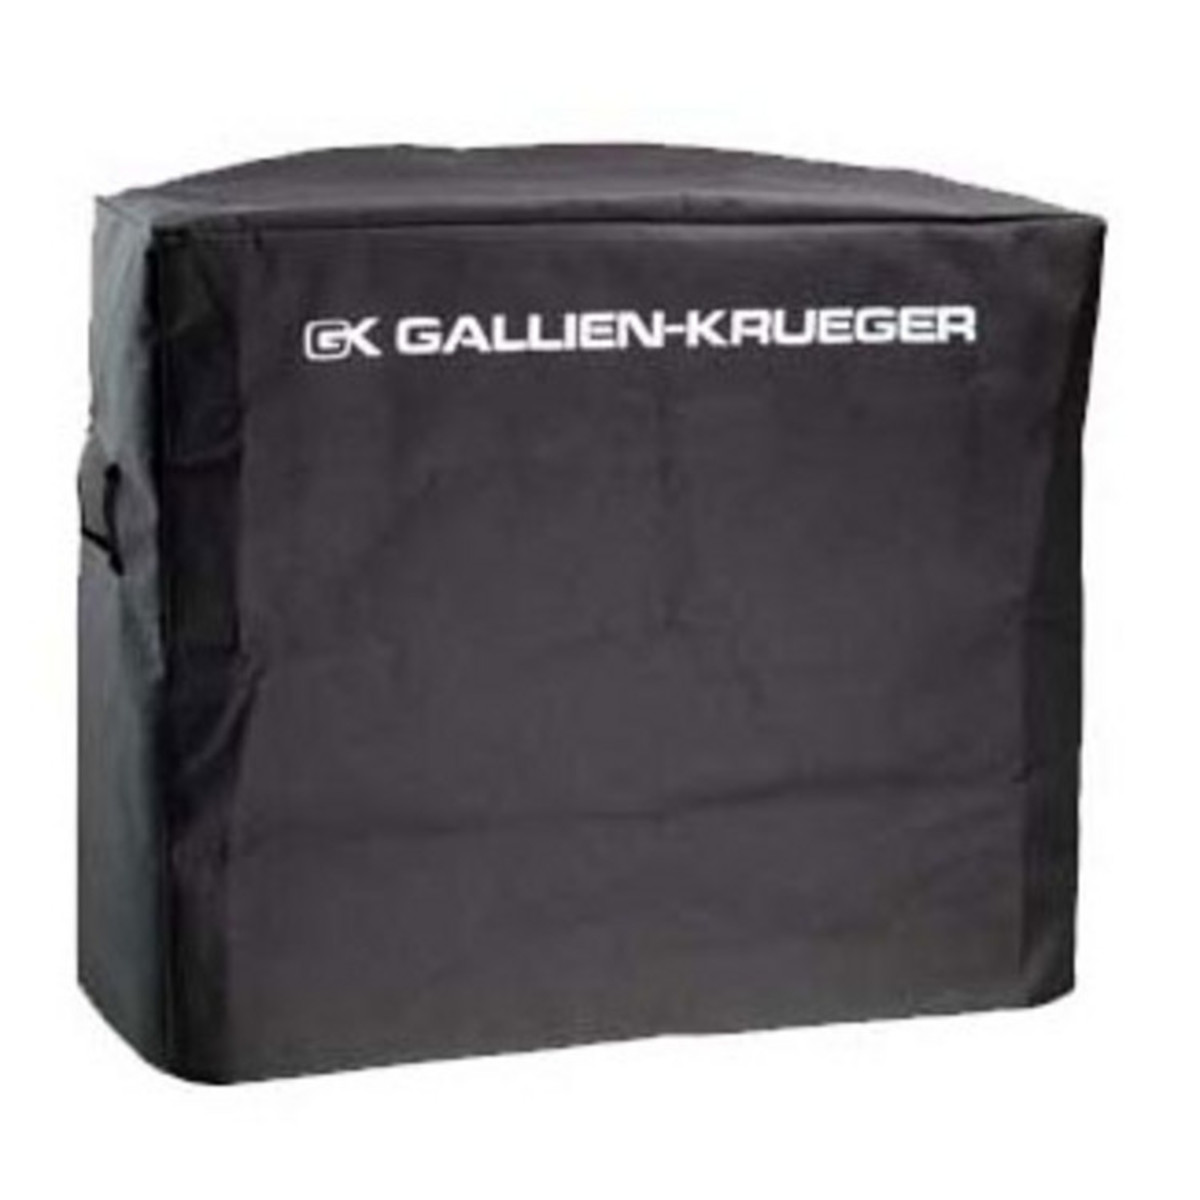 Gallien Krueger 304 3250 A 700rb 1001rb 115 Combo Cover